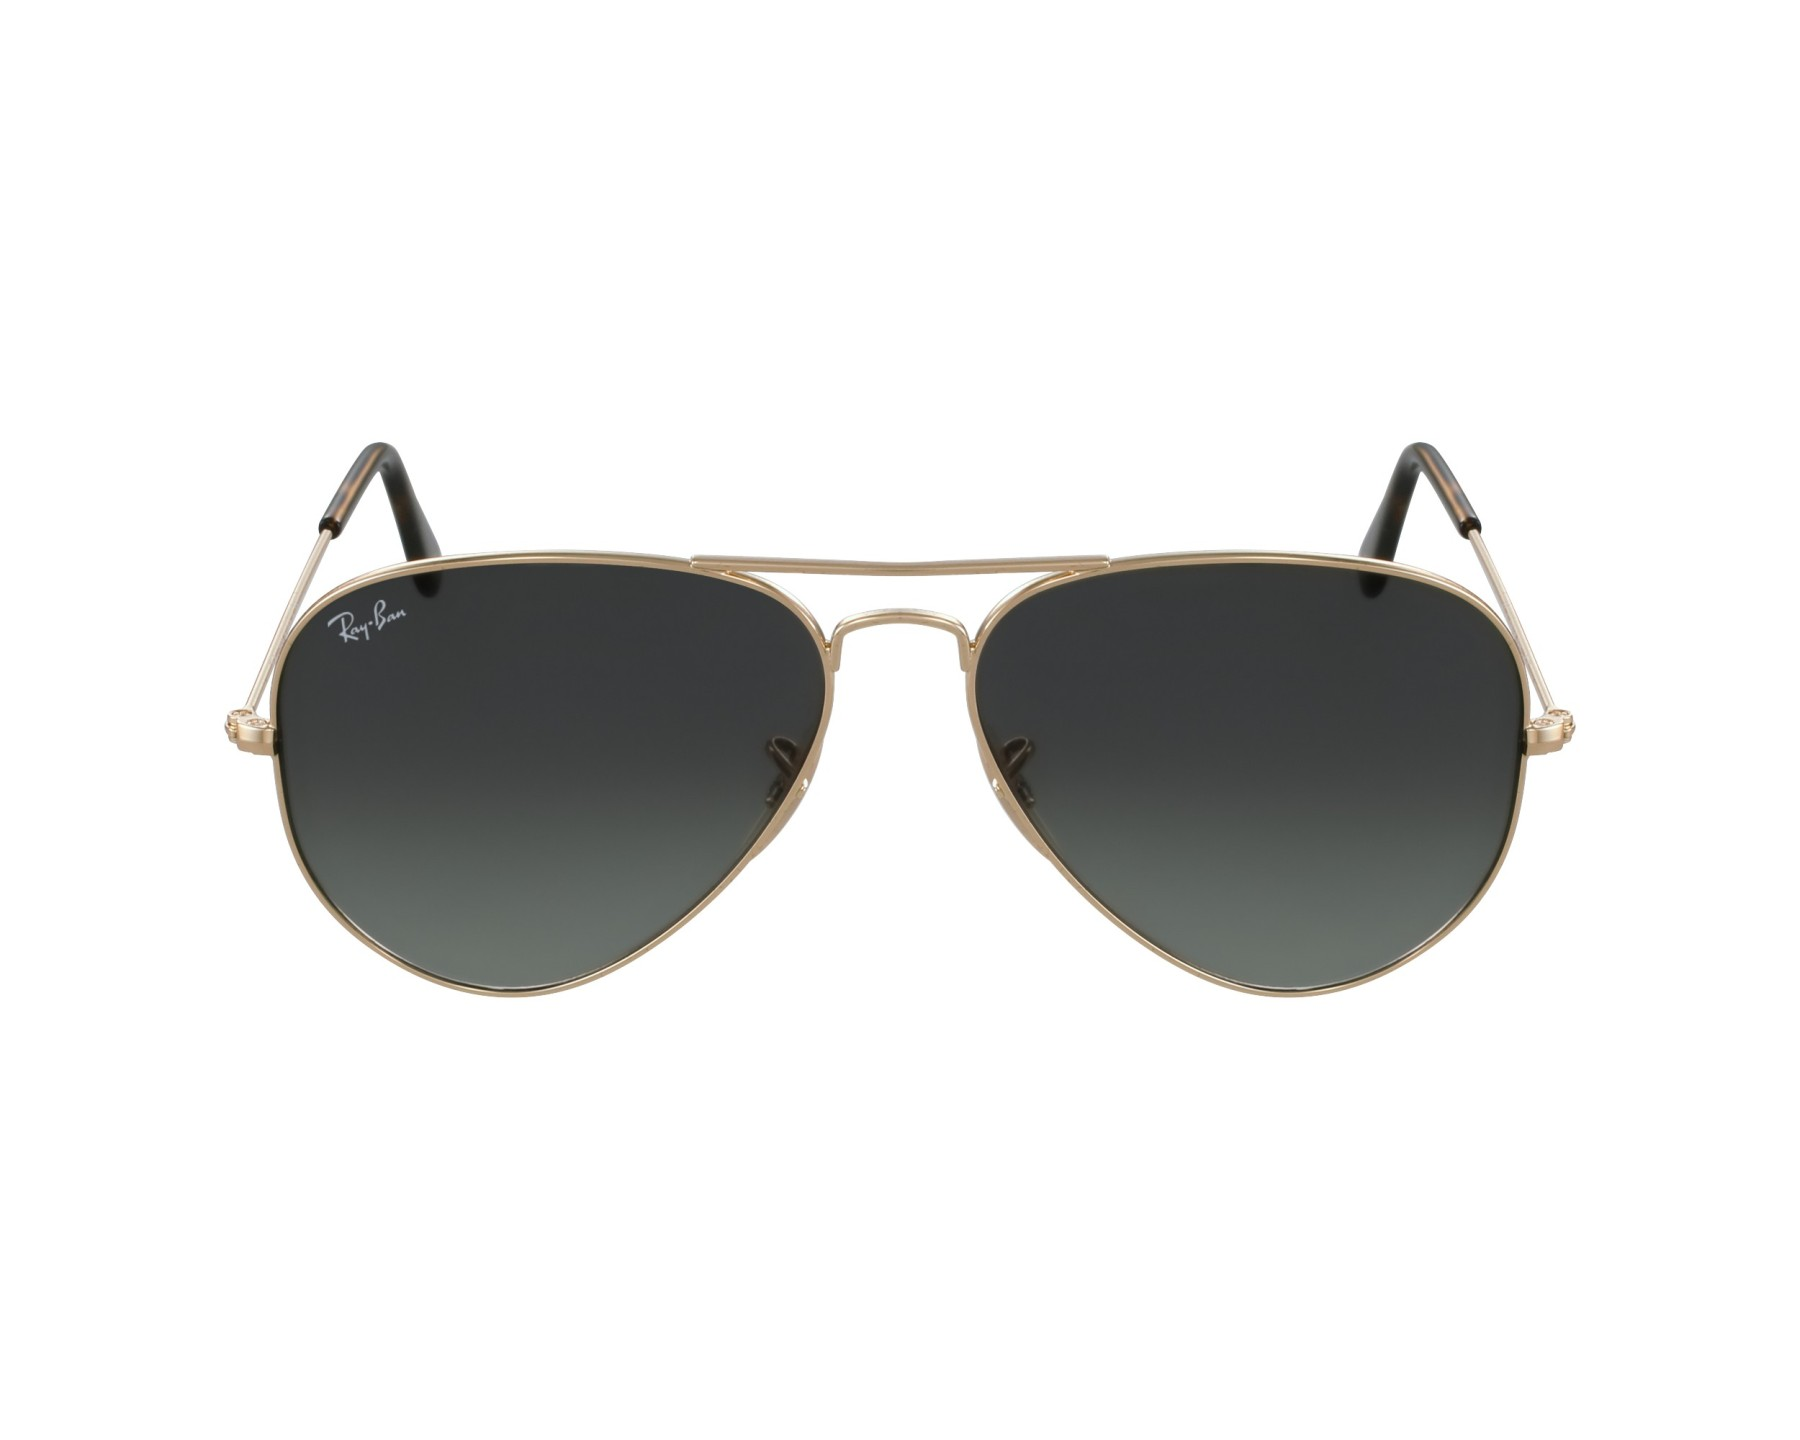 0f7f221a5 Sunglasses Ray-Ban RB-3025 181/71 58-14 Gold Havana profile